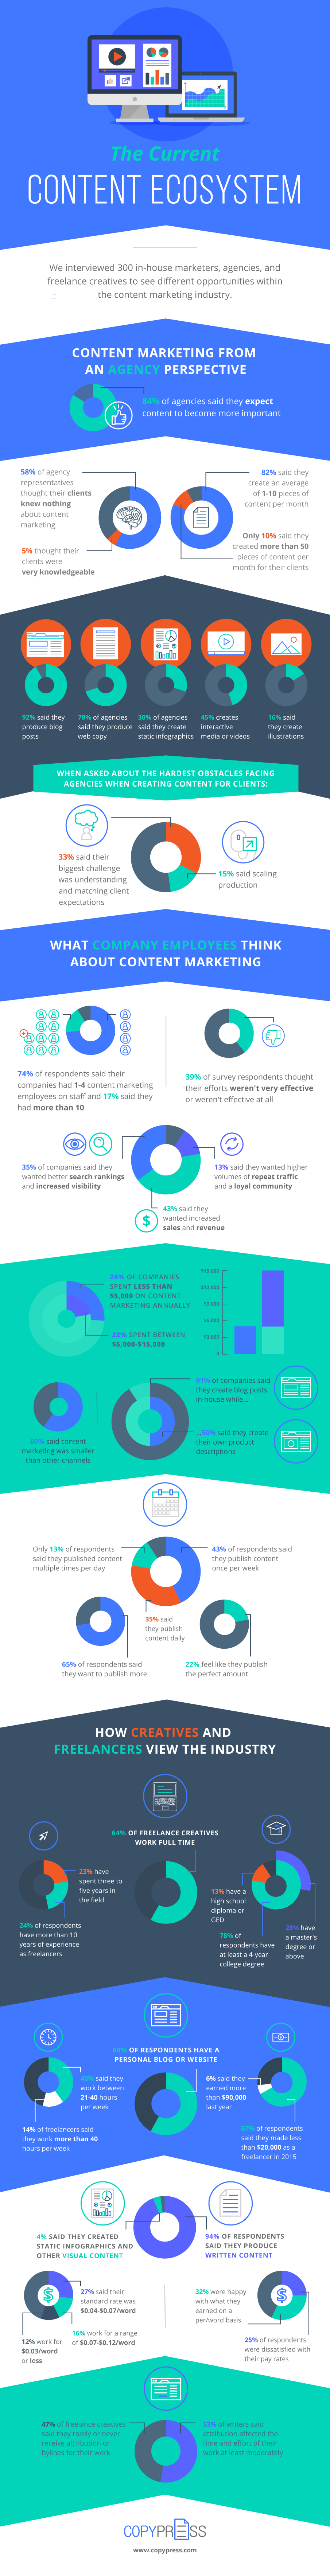 The Current State of Content Marketing (infographic)